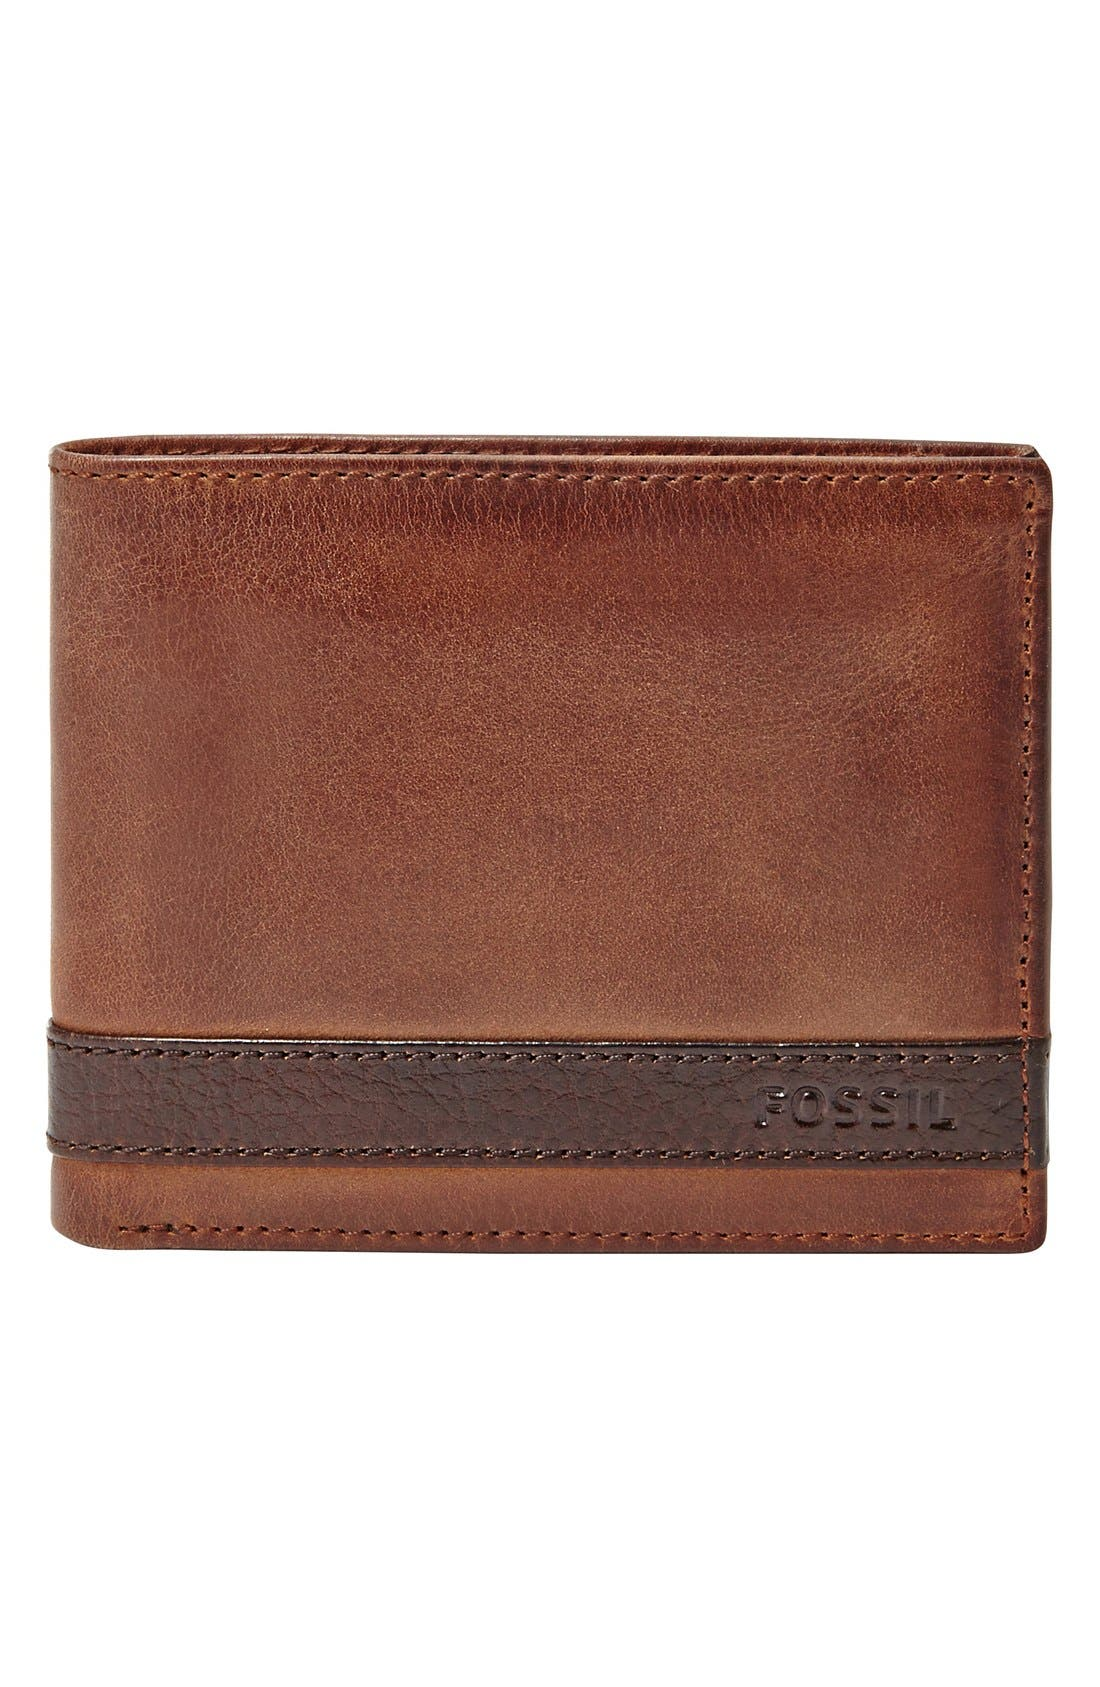 'Quinn' Leather Bifold Wallet,                             Alternate thumbnail 2, color,                             BROWN